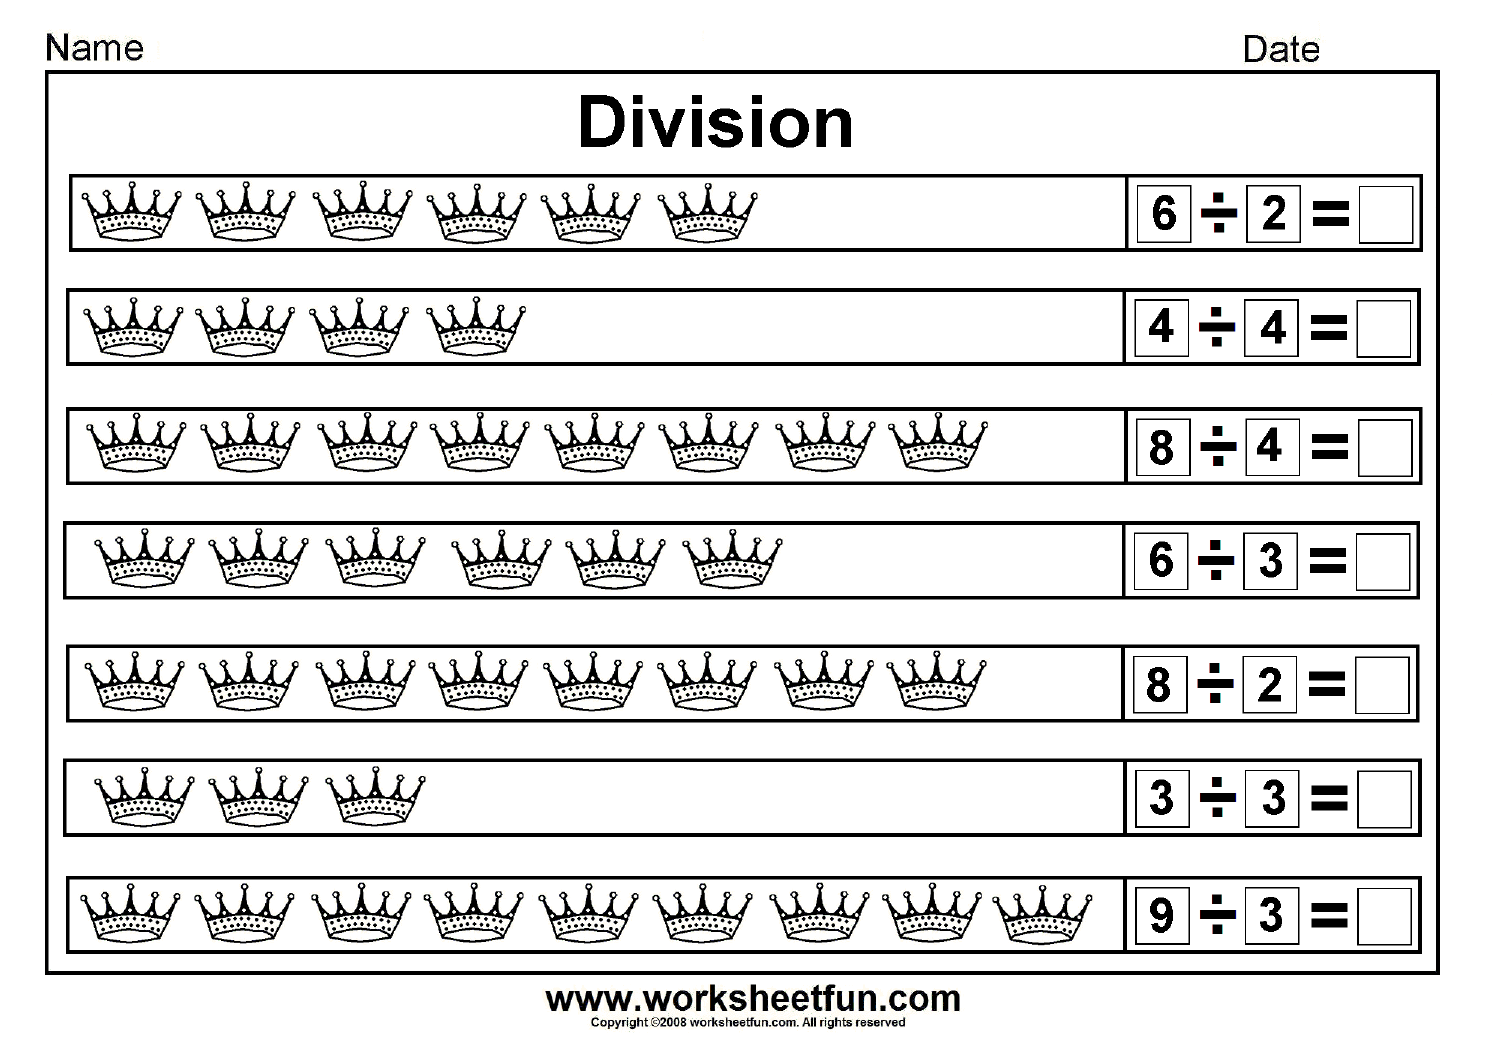 Division Sharing Equally Picture Division 14 Worksheets Free Printable Worksheets